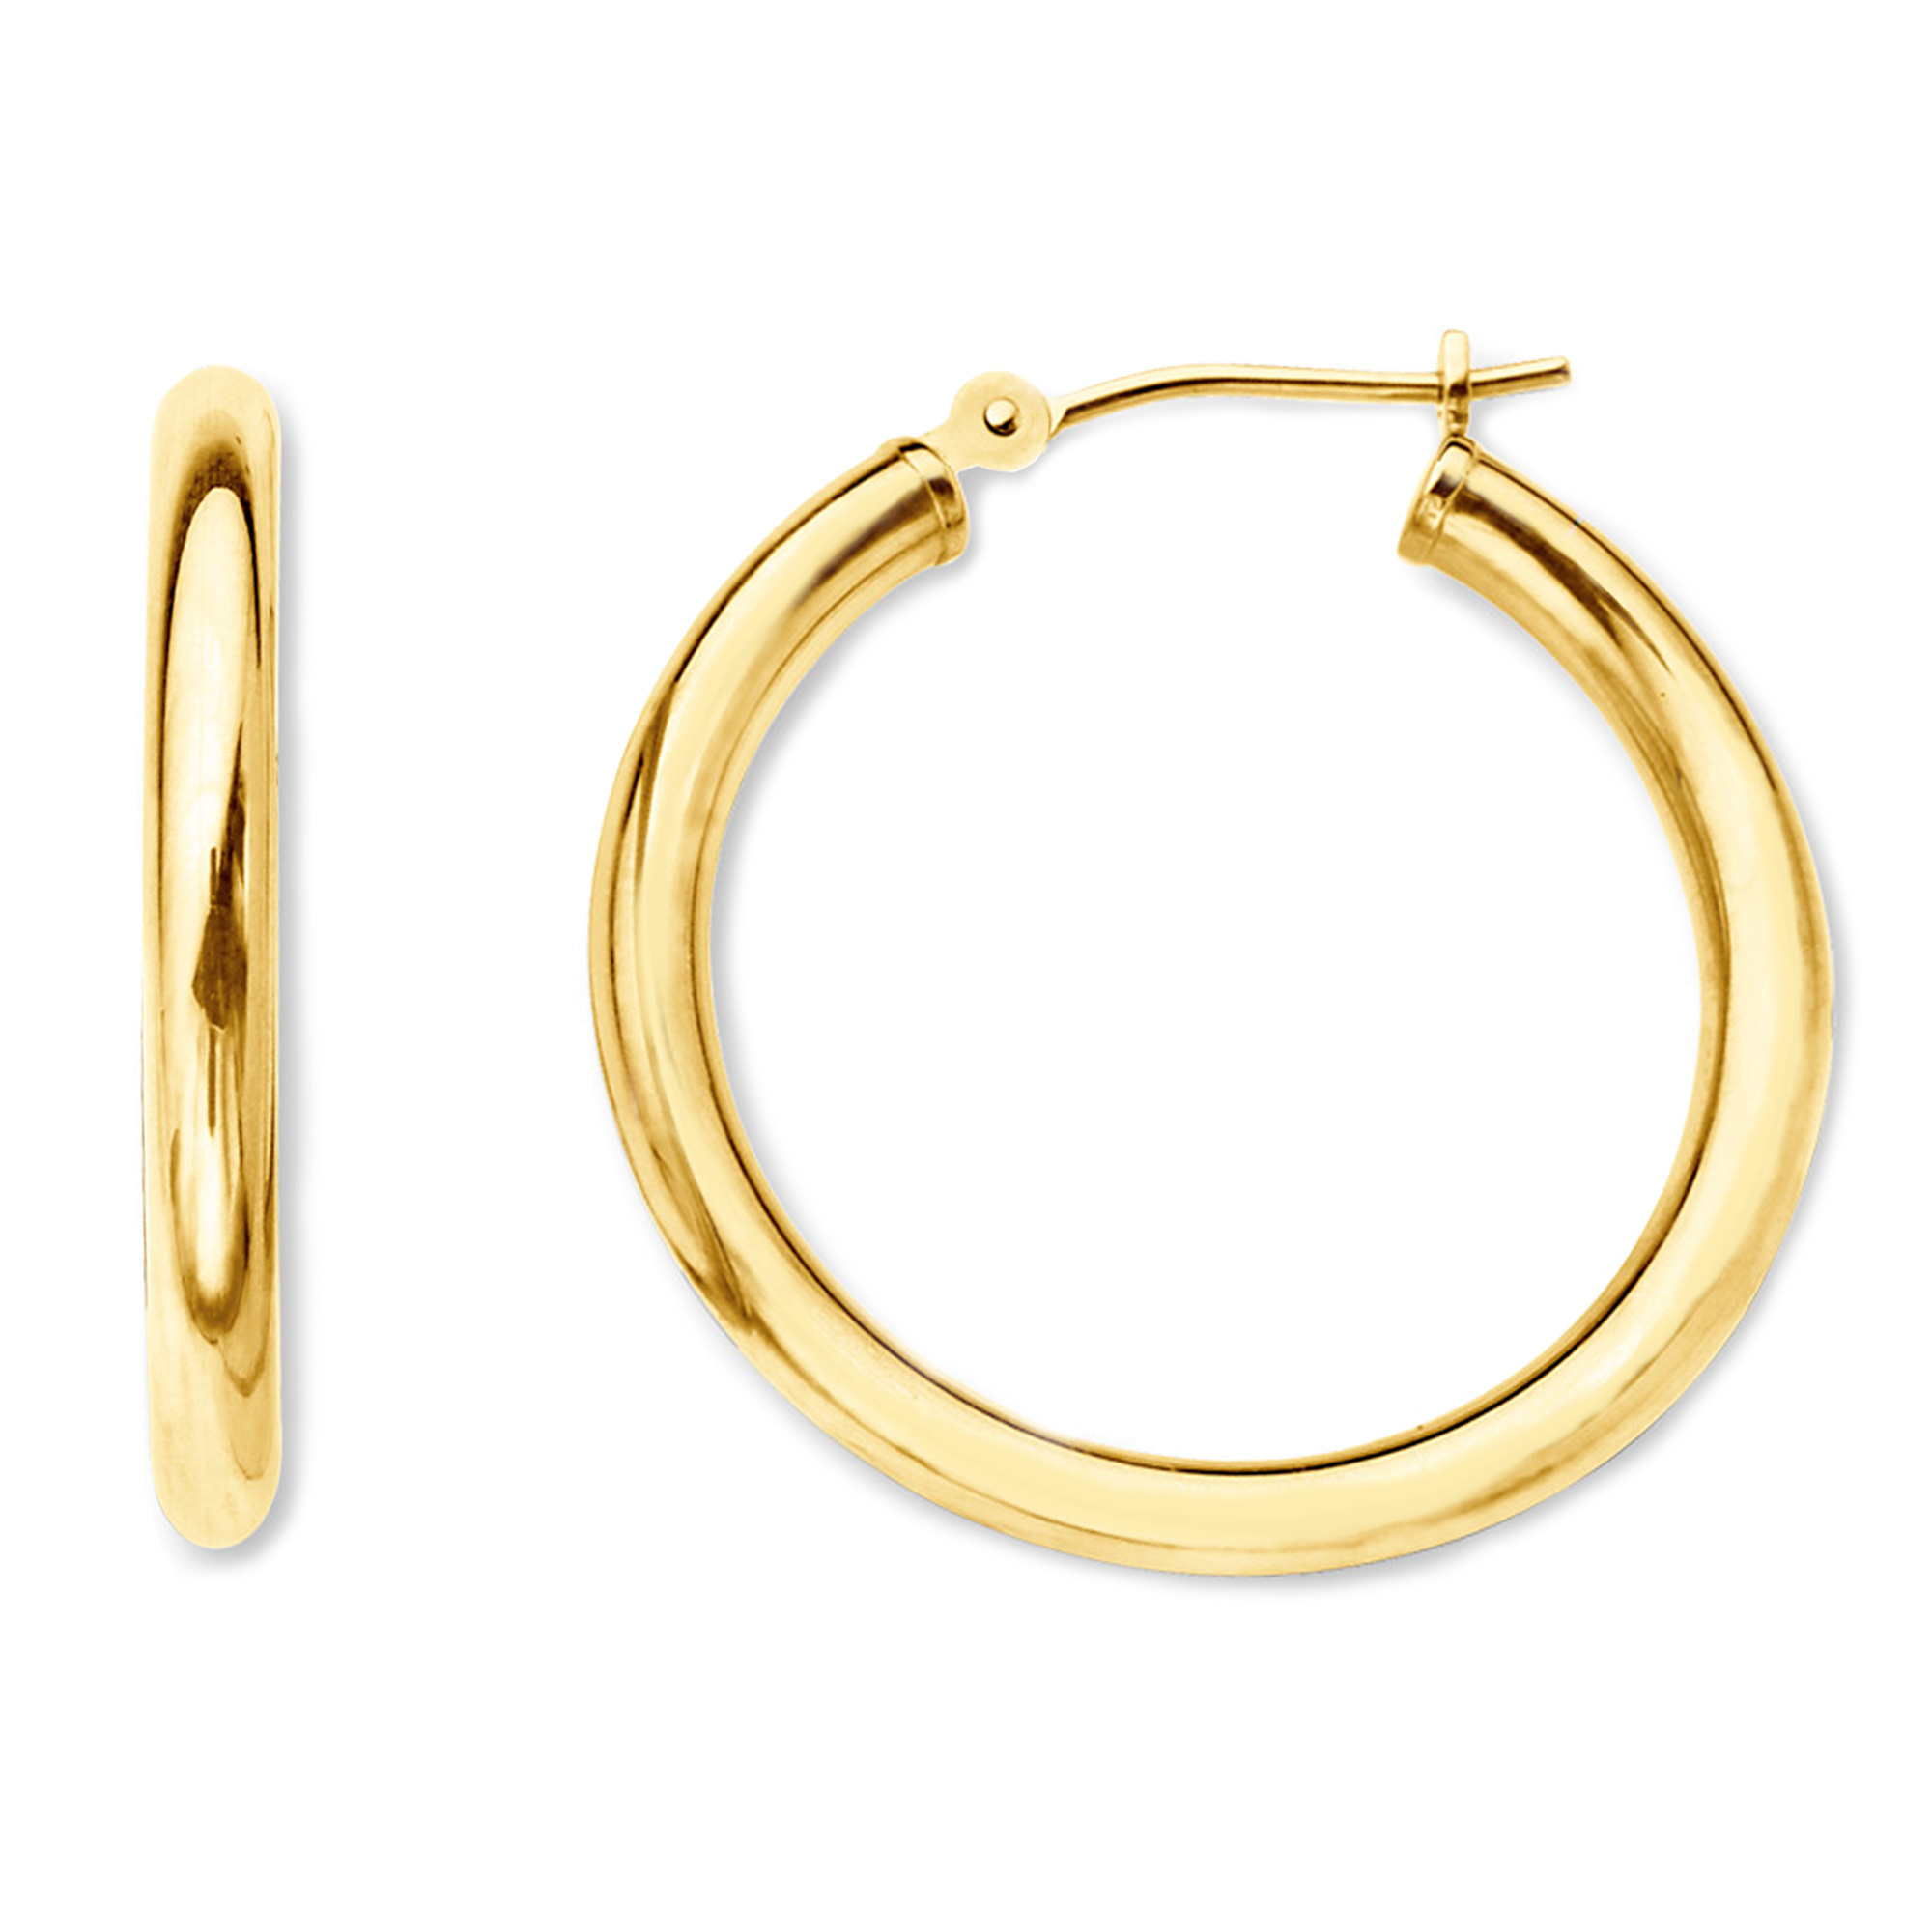 10k Yellow Gold 2mm Shiny Round Tube Hoop Earrings, Diameter 30mm Complete your jewelry collection with a gorgeous pair of 10k gold hoop earrings. Whether you prefer large bohemian look or tiny orbs, you'll discover plenty of sizes to match your style. These earrings have a secure snap post clasp making them easy to wear and remove.